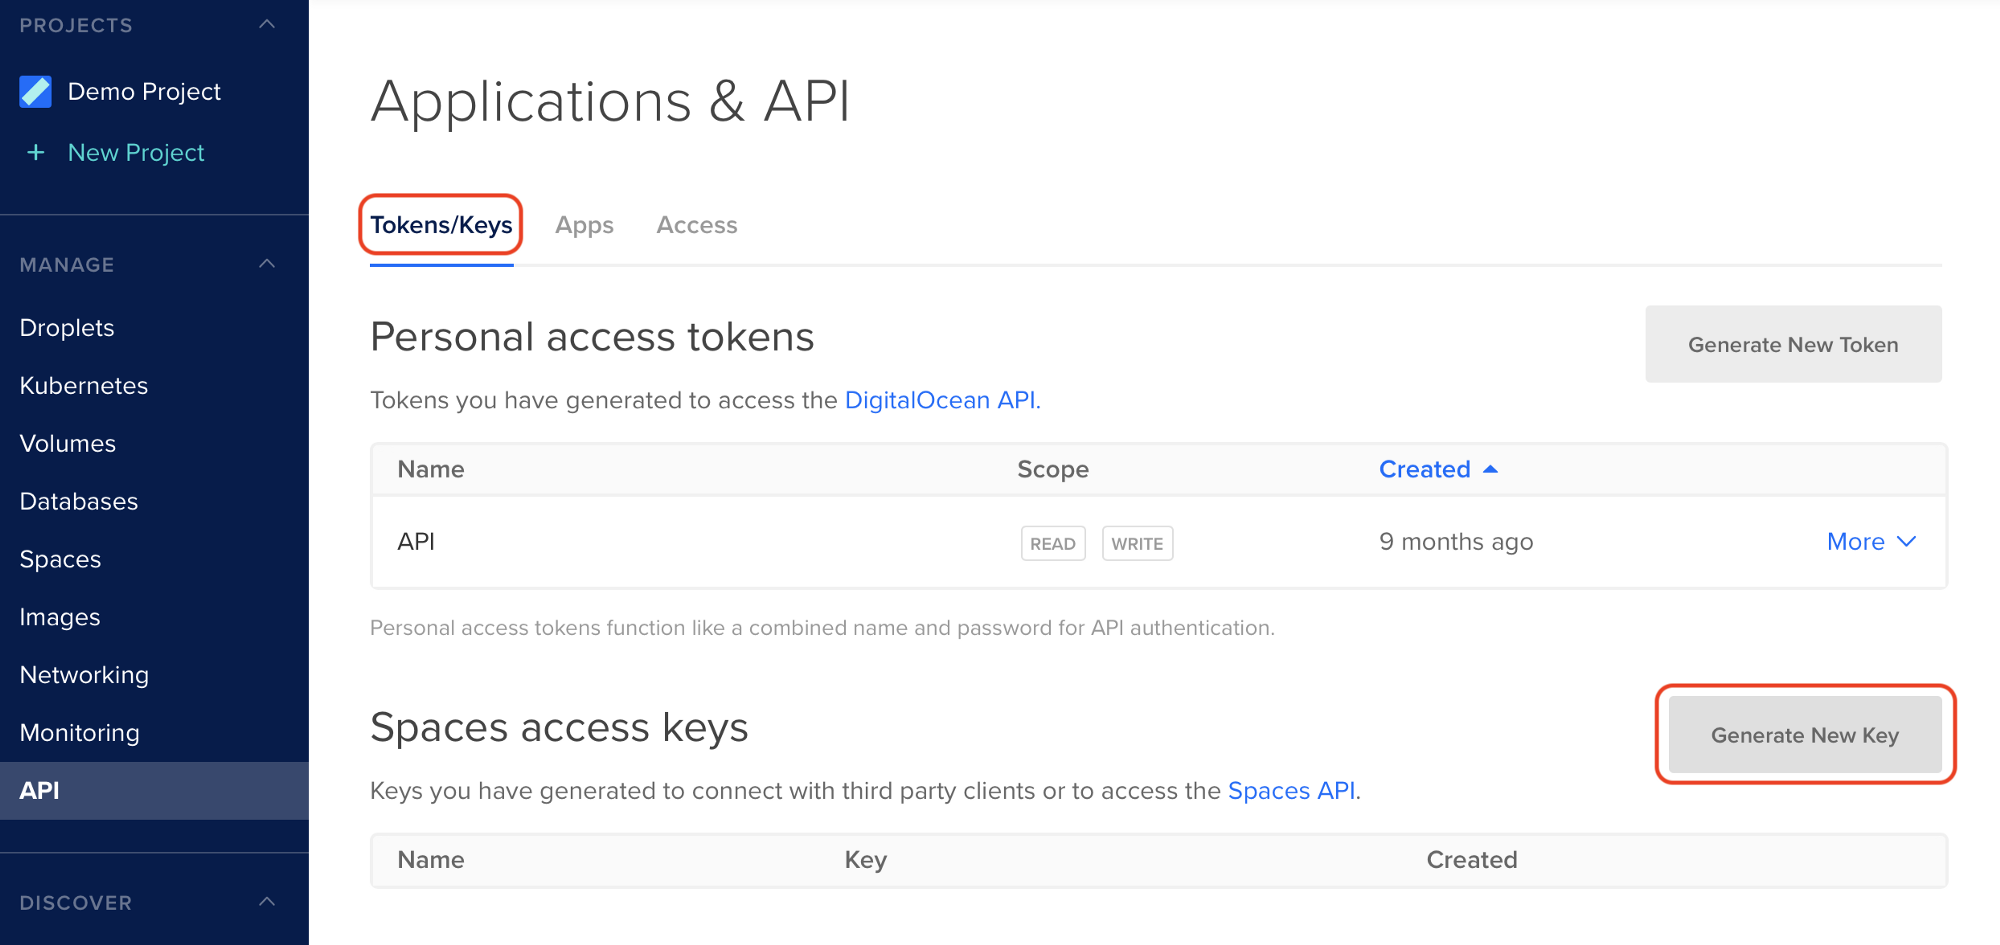 Step 2 - DigitalOcean Spaces Credentials